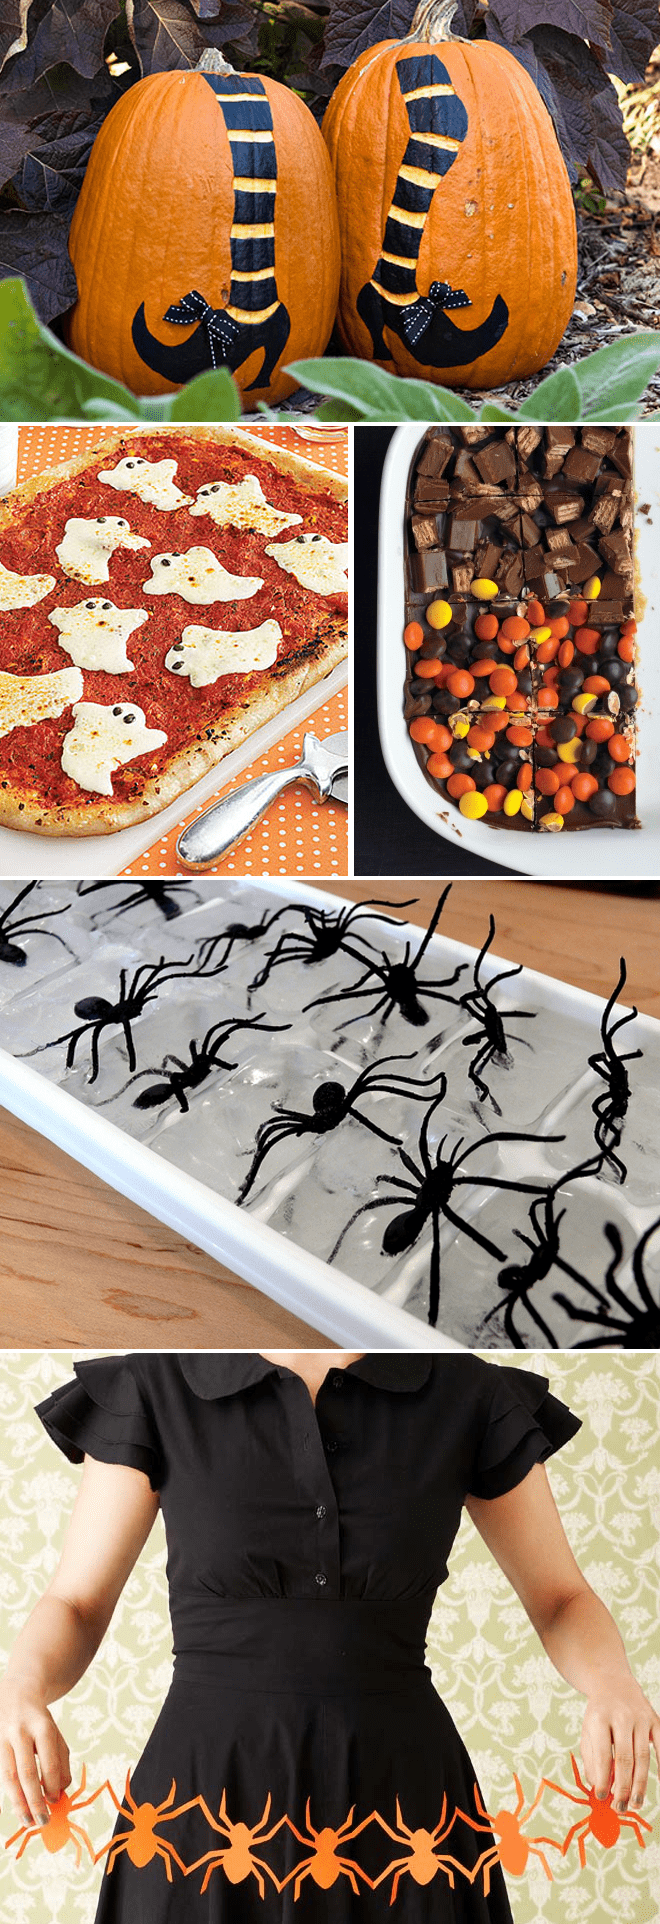 Last Minute Halloween Ideas!